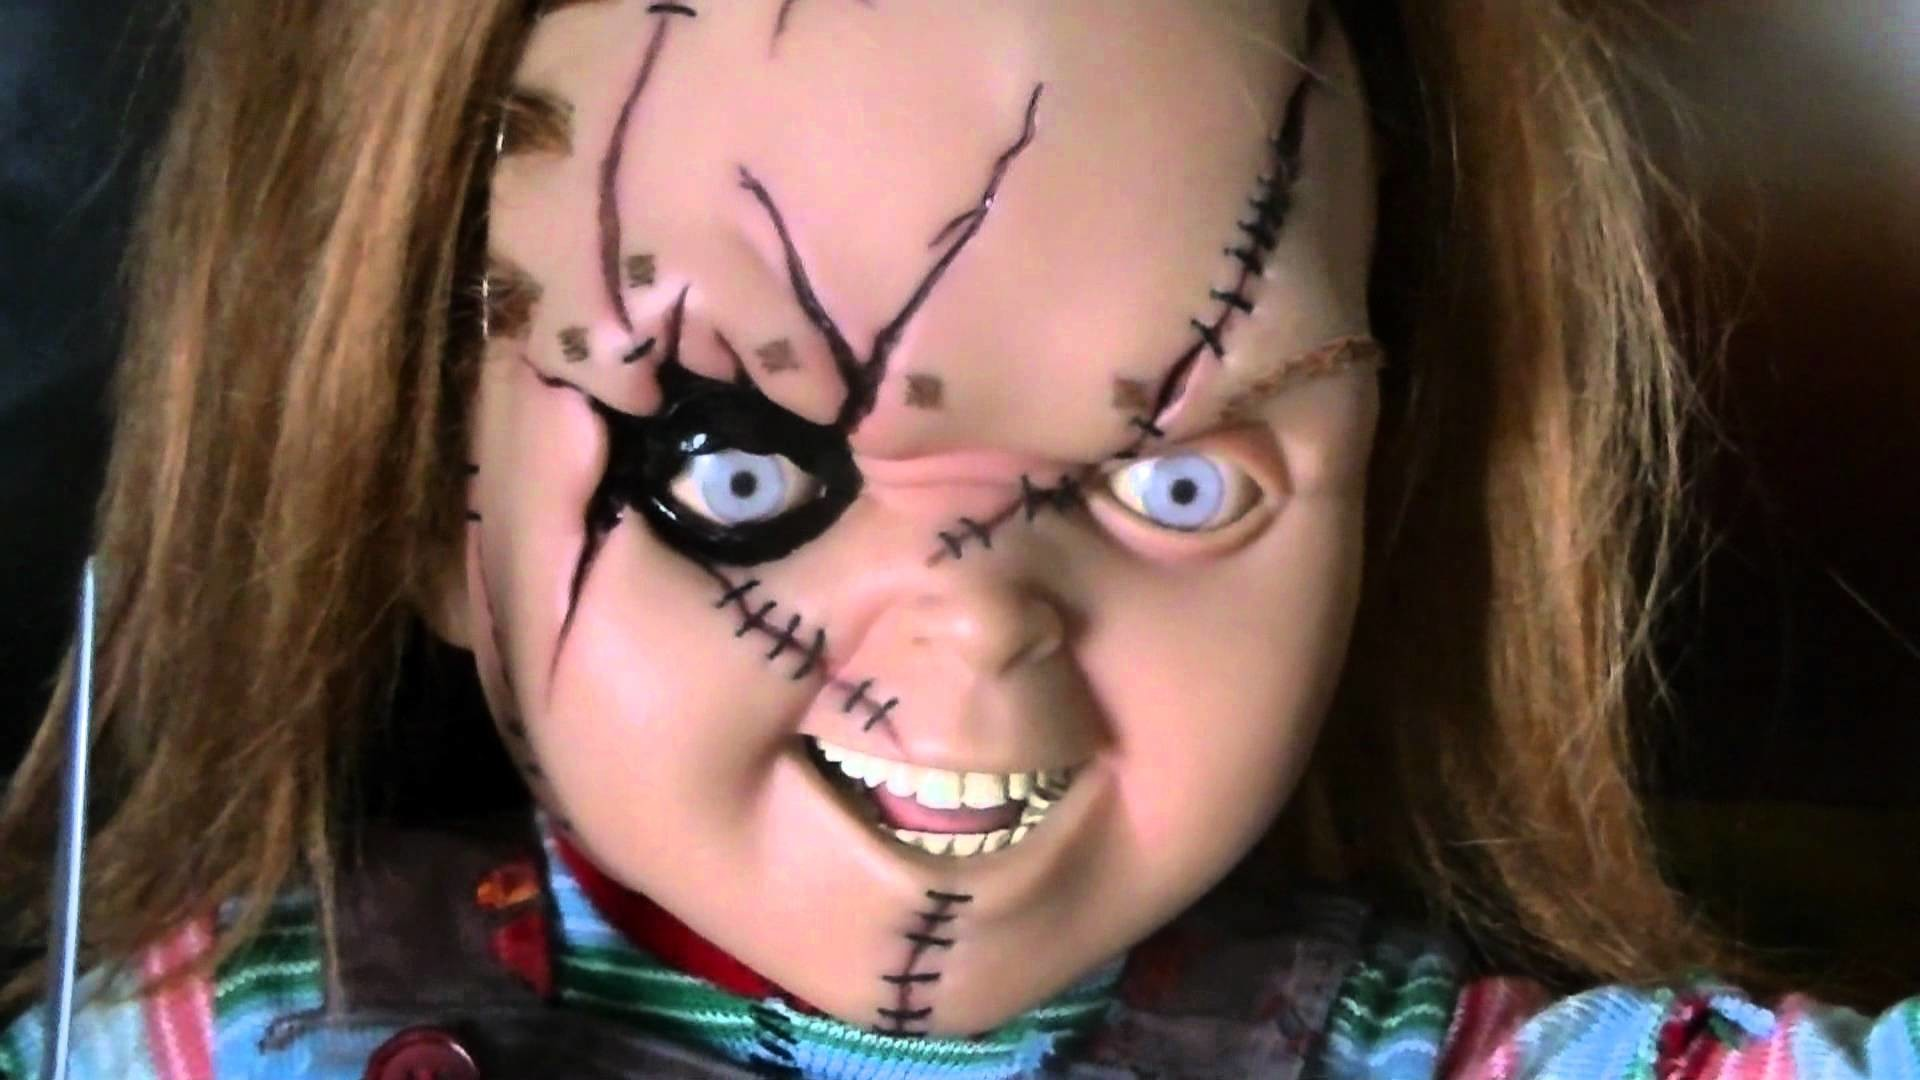 1920x1080 Sideshow Chucky doll - favorite item!